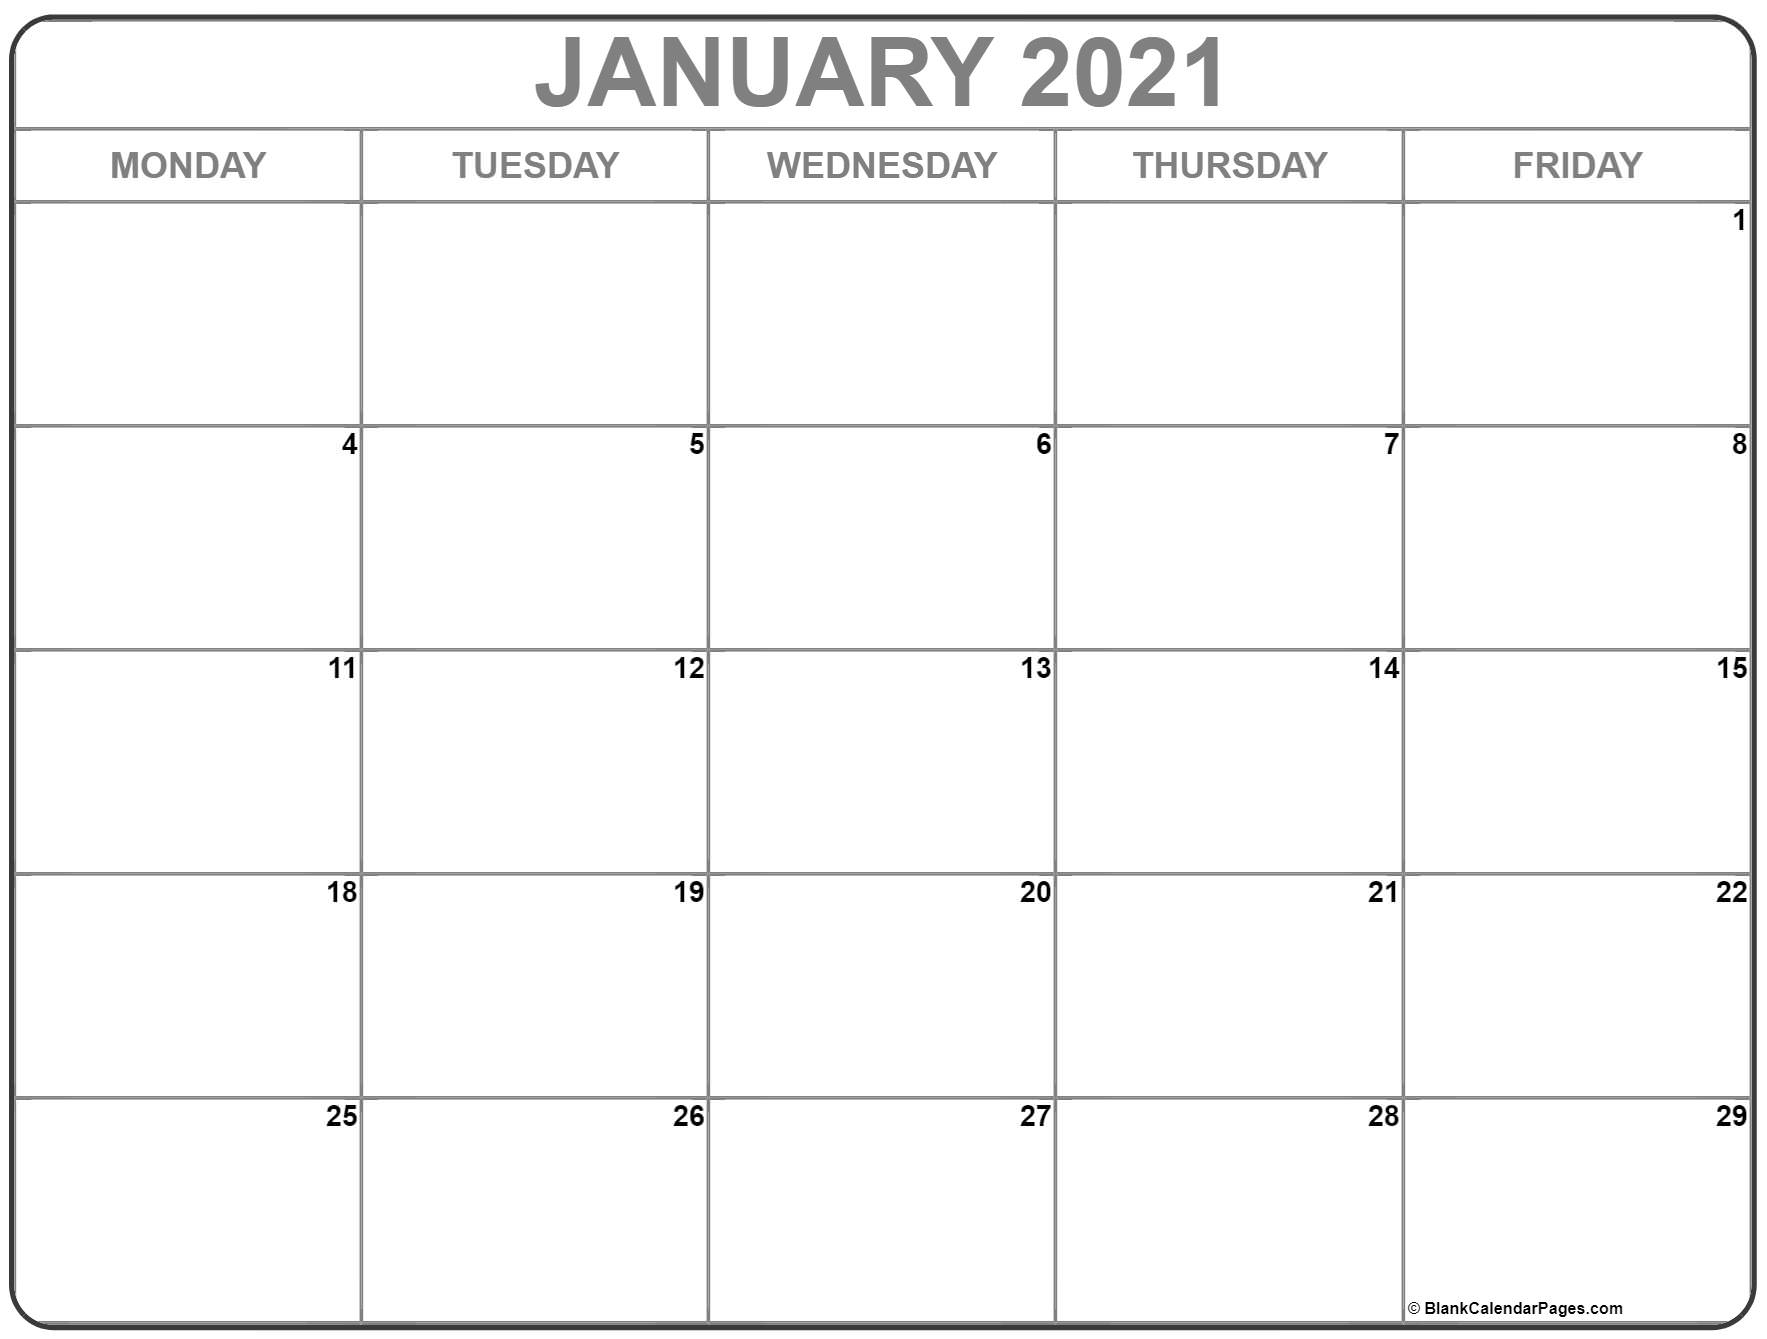 January 2021 Monday Calendar | Monday To Sunday